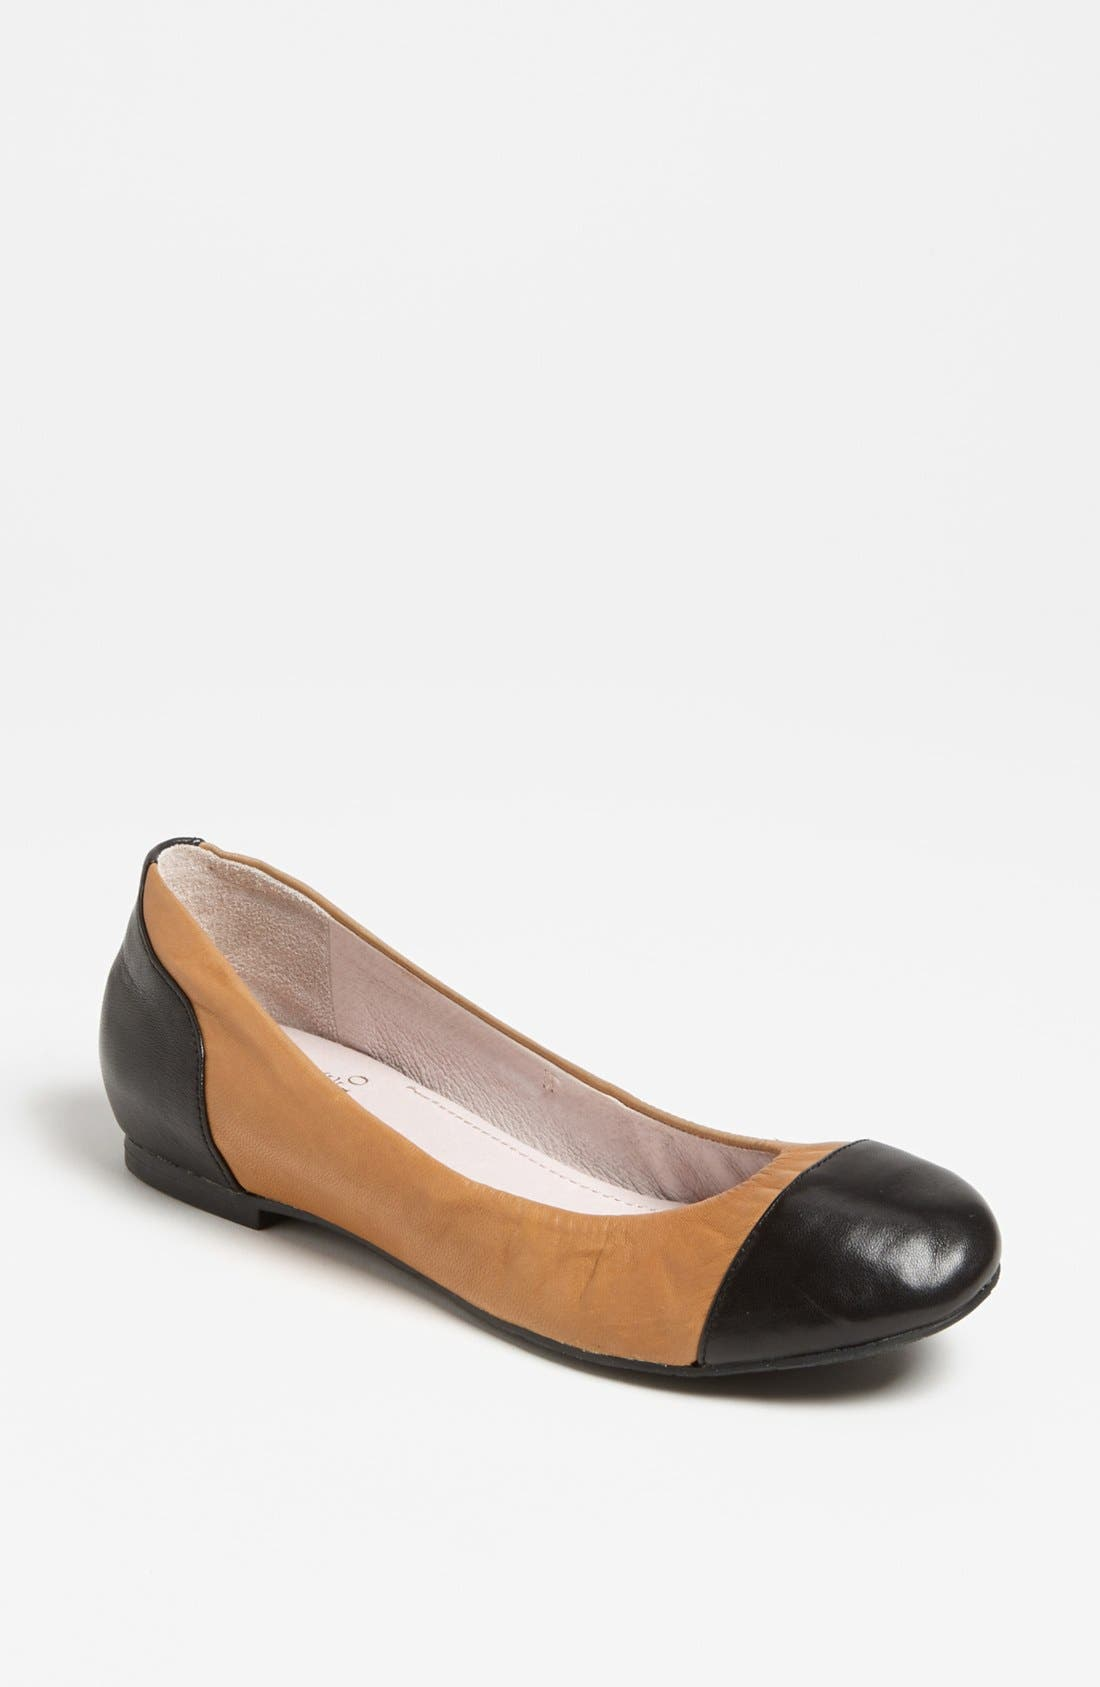 Alternate Image 1 Selected - Vince Camuto 'Linkon' Flat